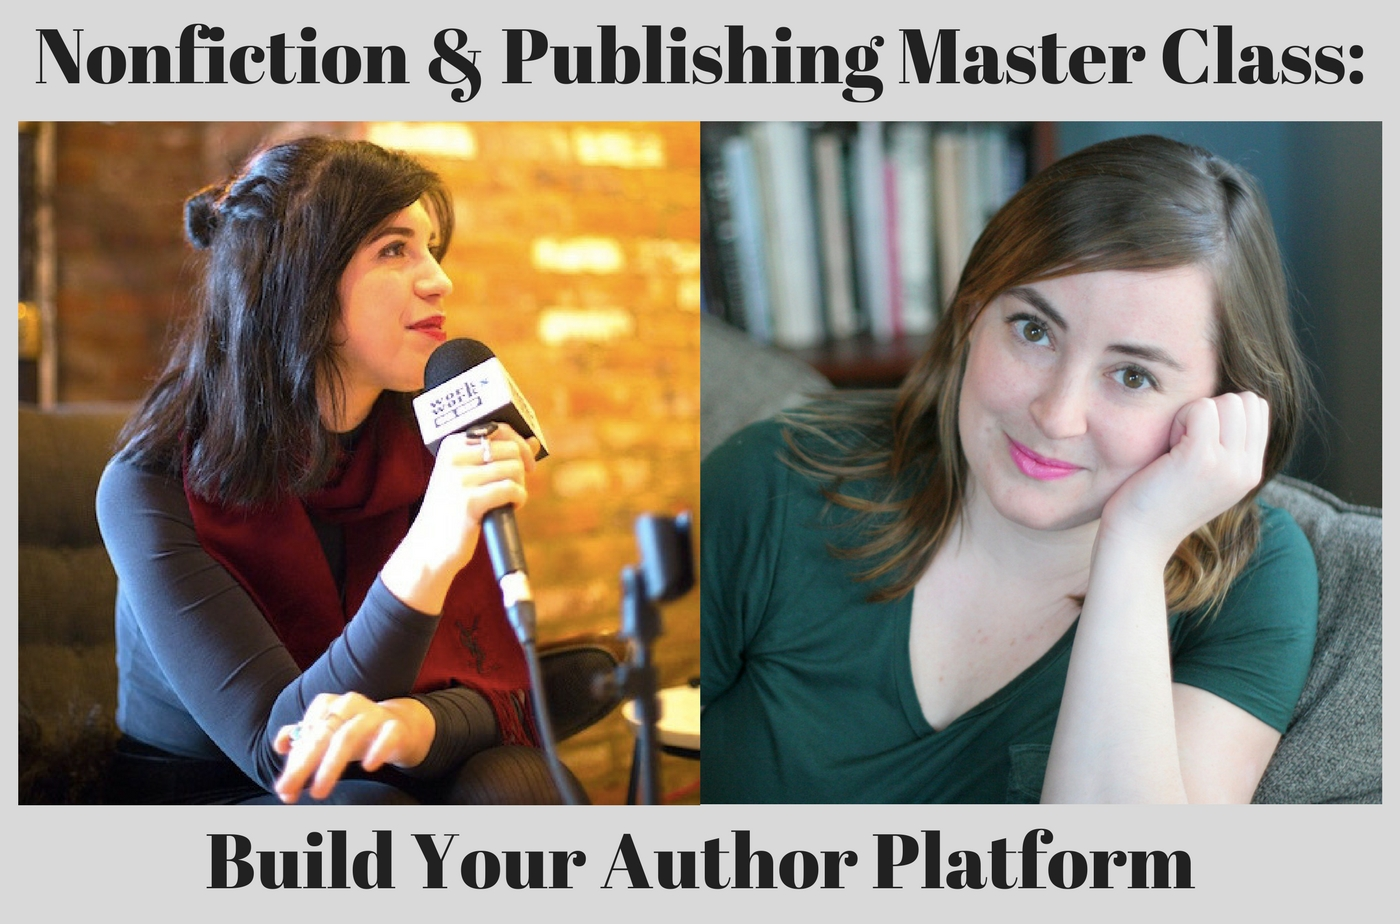 Catapult  classes: Laura Feinstein, Leigh Stein, Nonfiction & Publishing Master Class: Build Your Author Platform, Nonfiction, Master Class